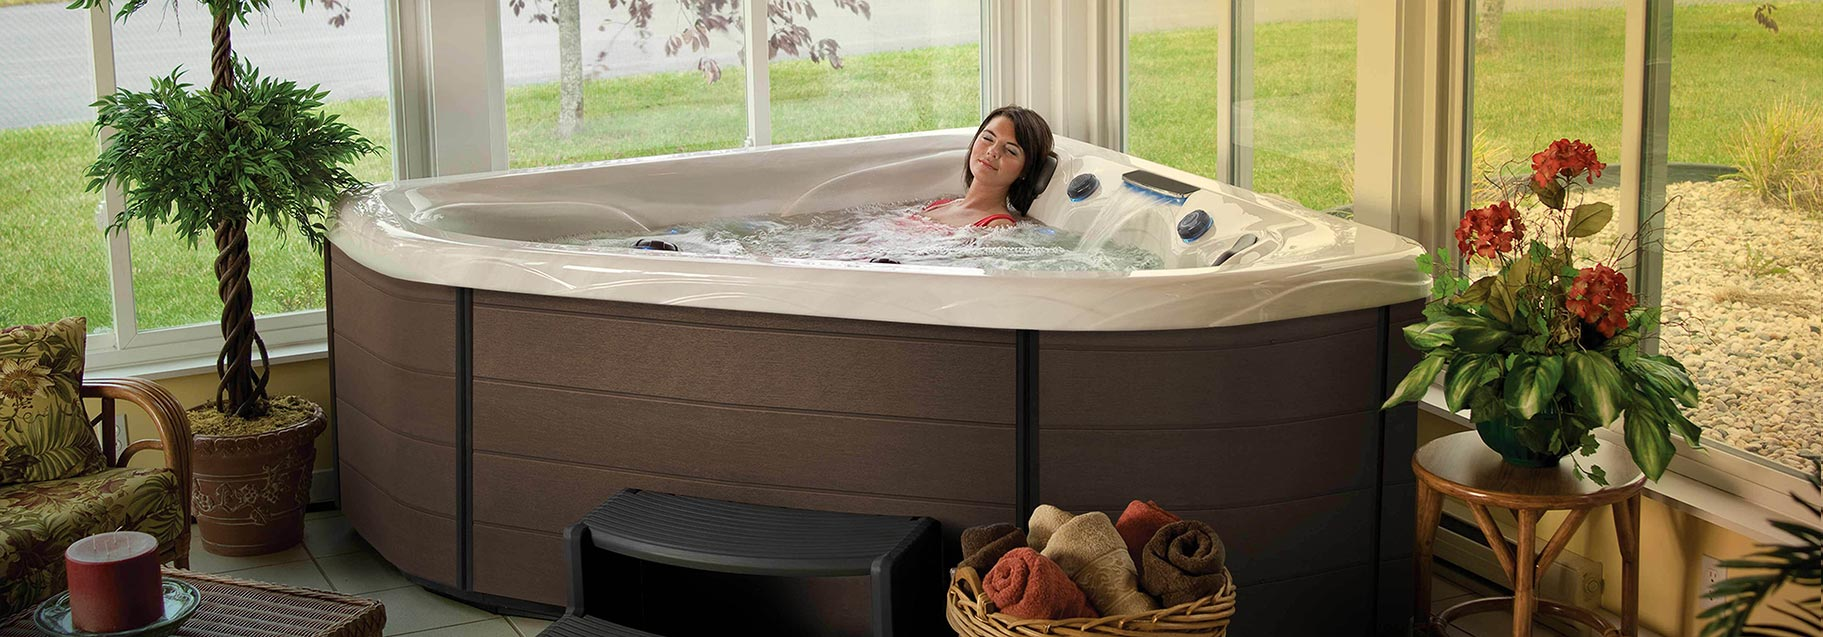 Ts 240 Hot Tub Model From Twilight Series